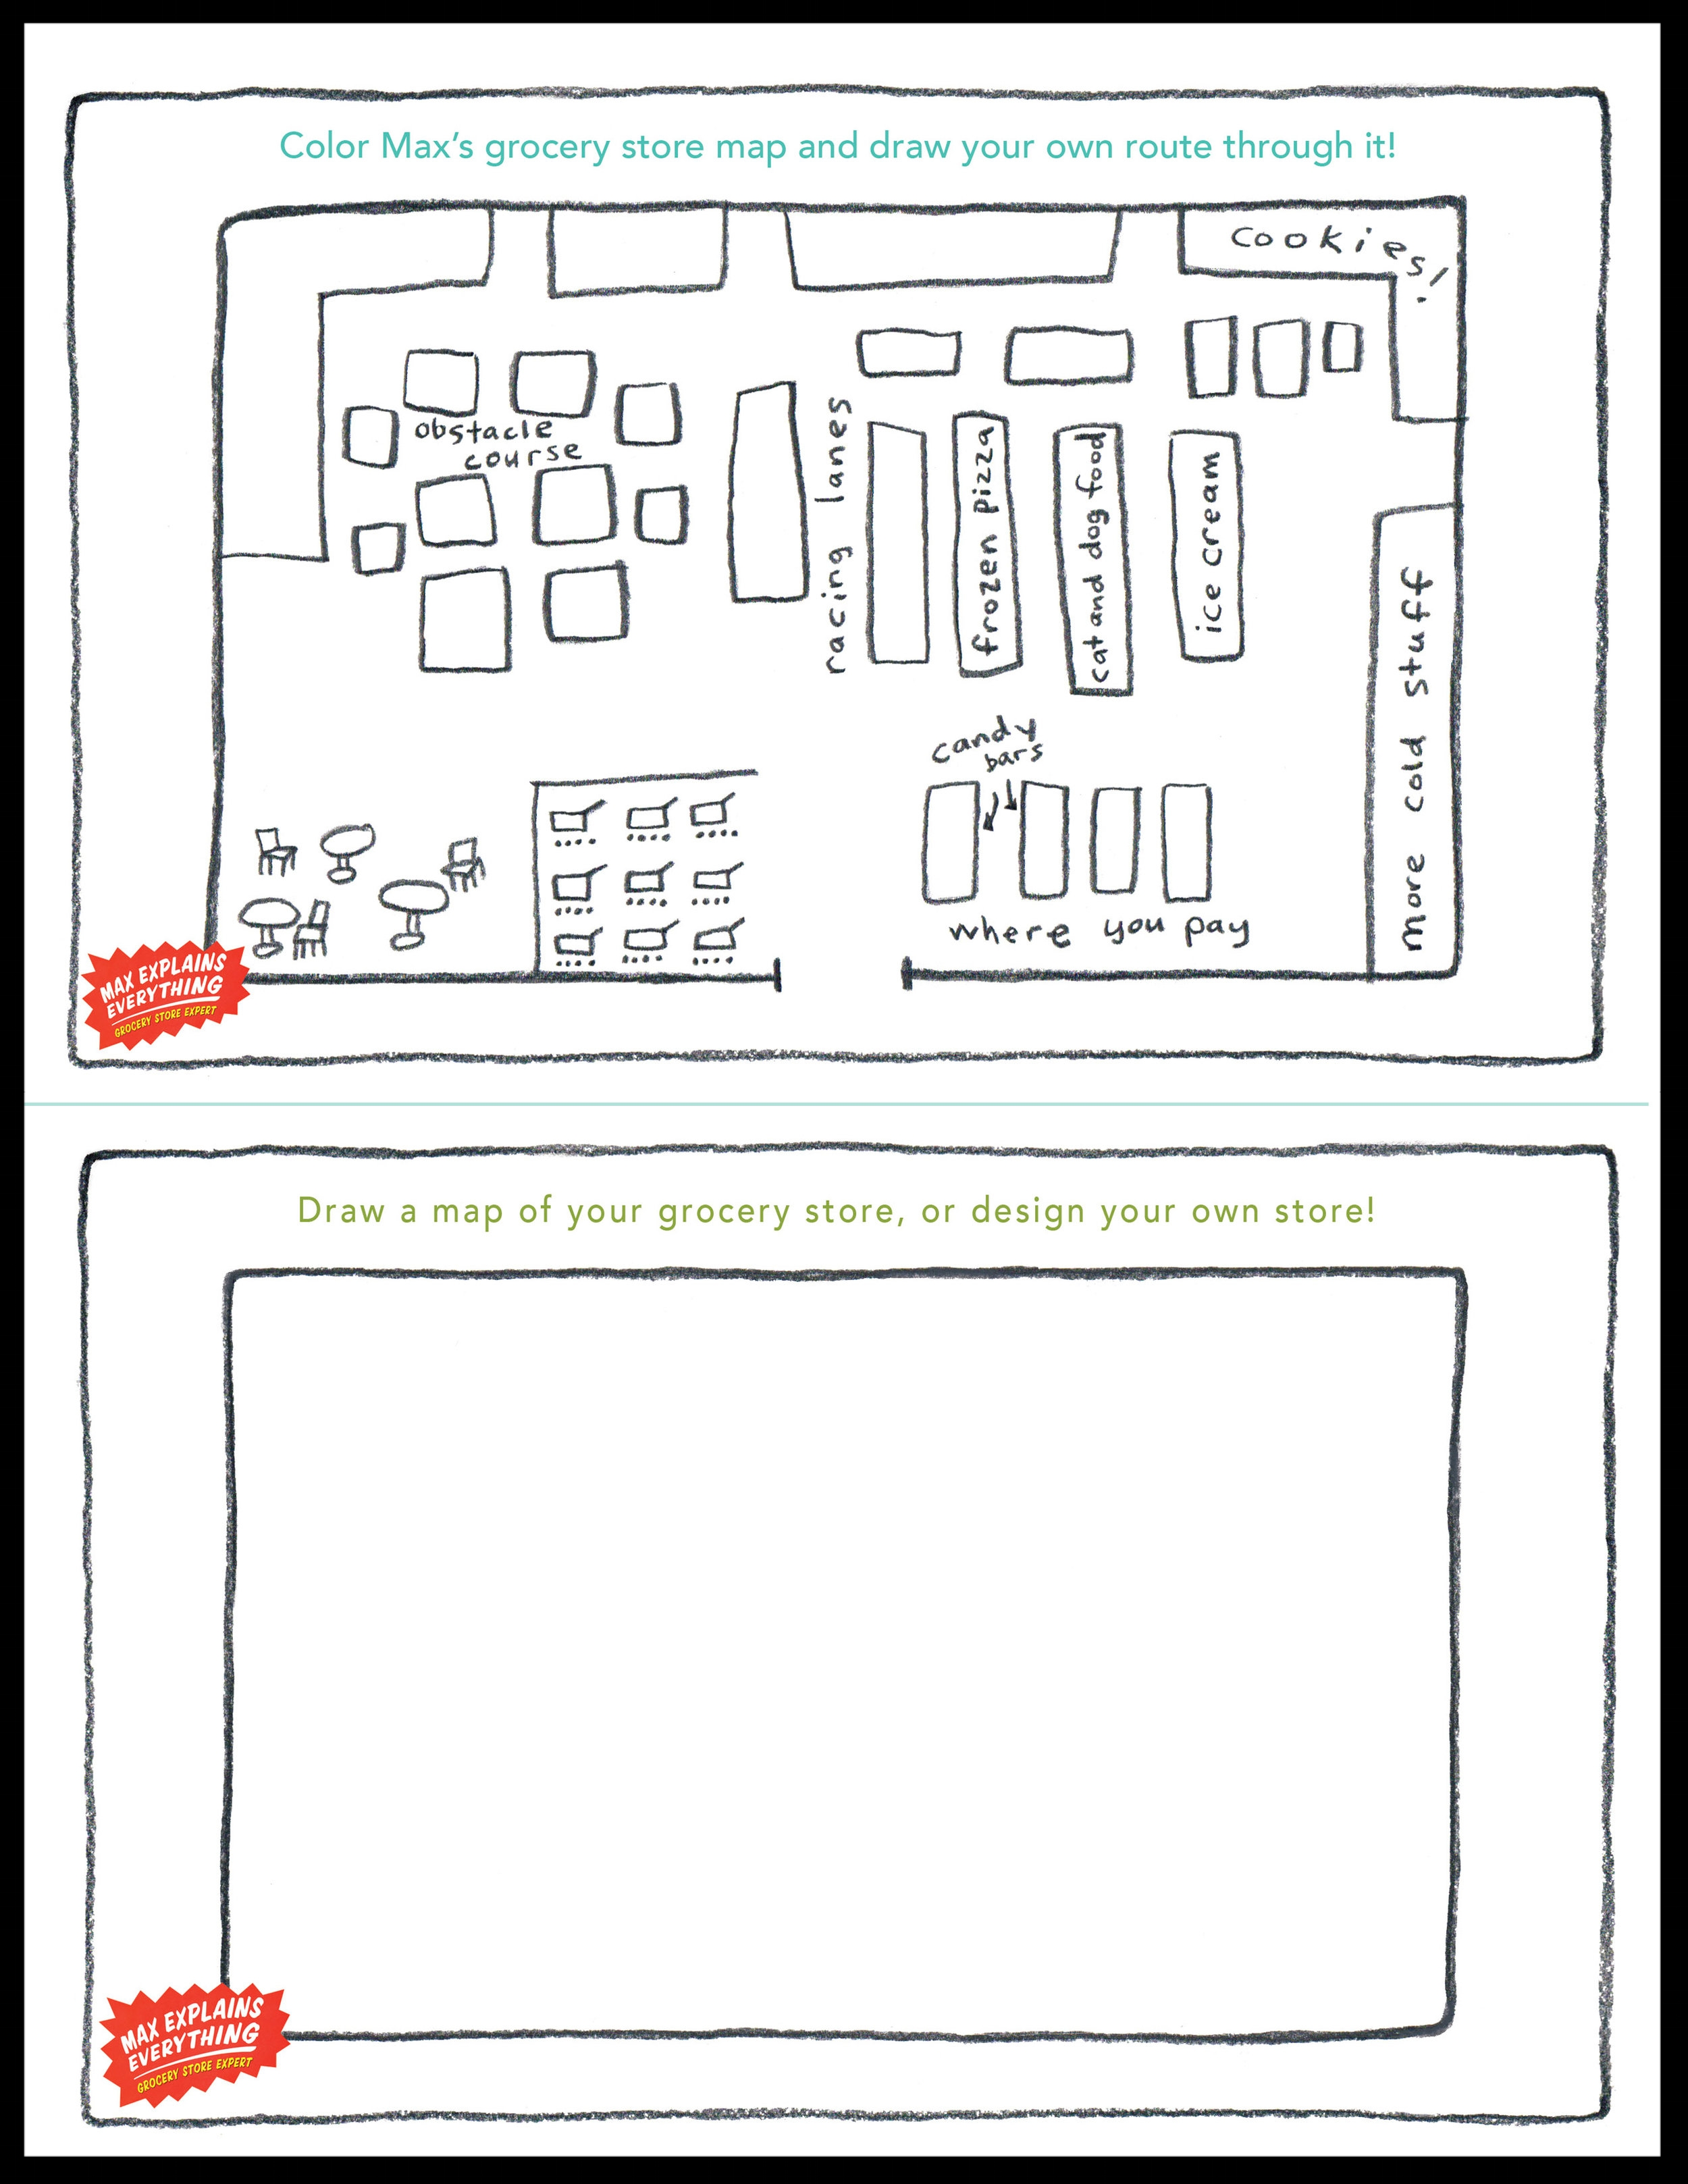 Create and Color a Map of the Store